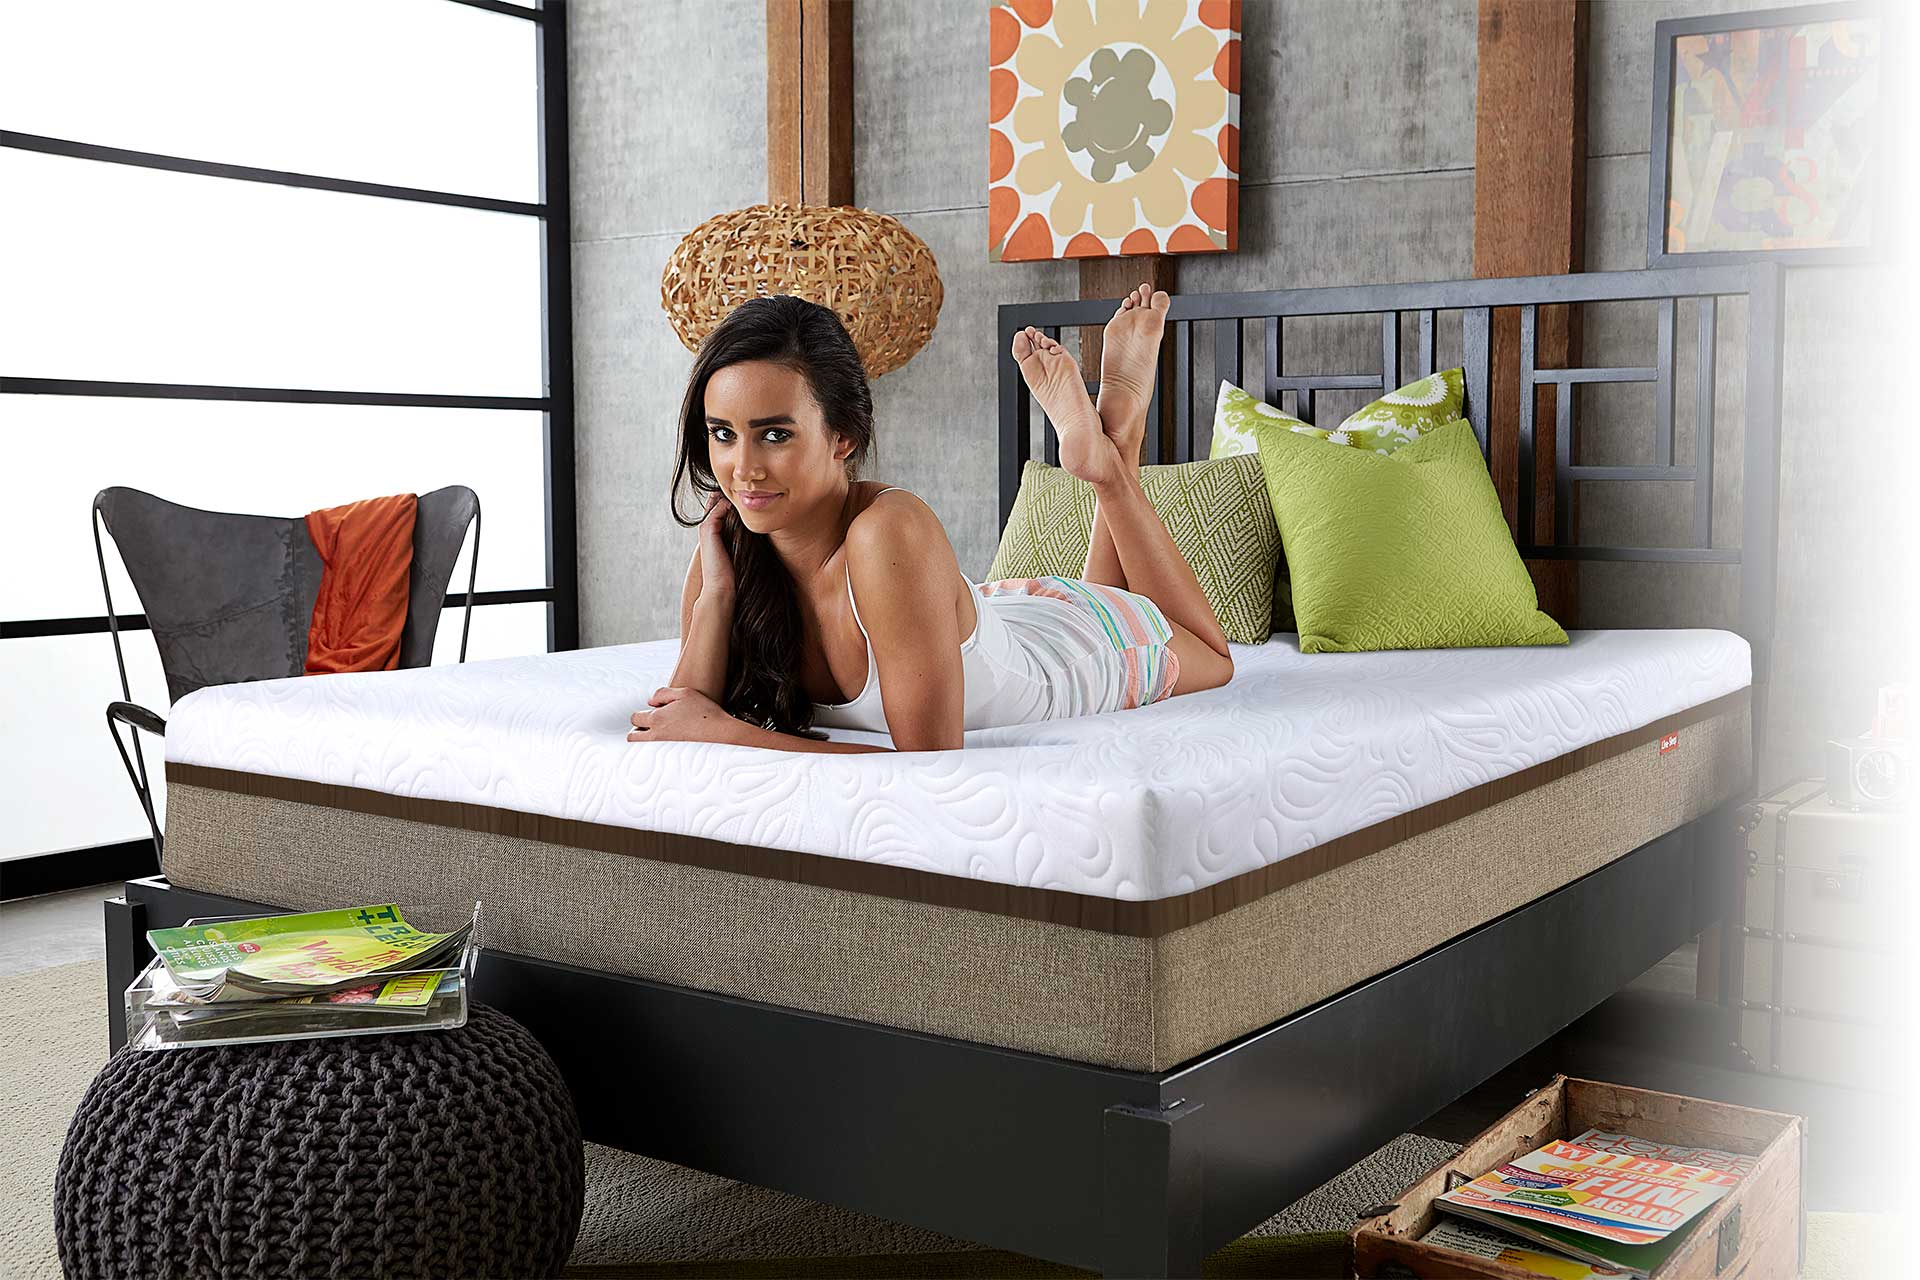 Best Twin Xl Size Mattress Online Free 2 Day Shipping Live Sleep Live And Sleep